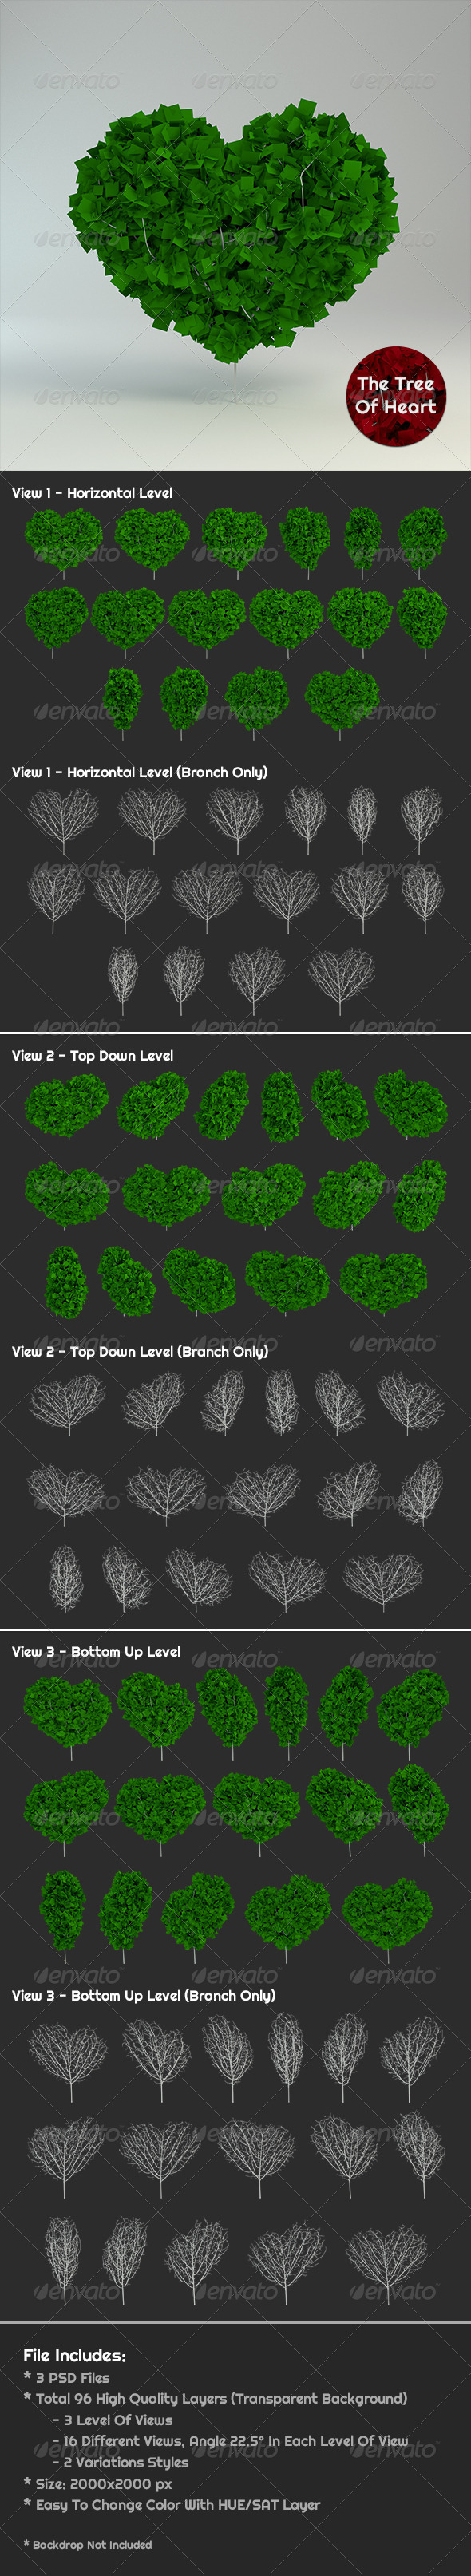 GraphicRiver The Tree Of Heart 6740299